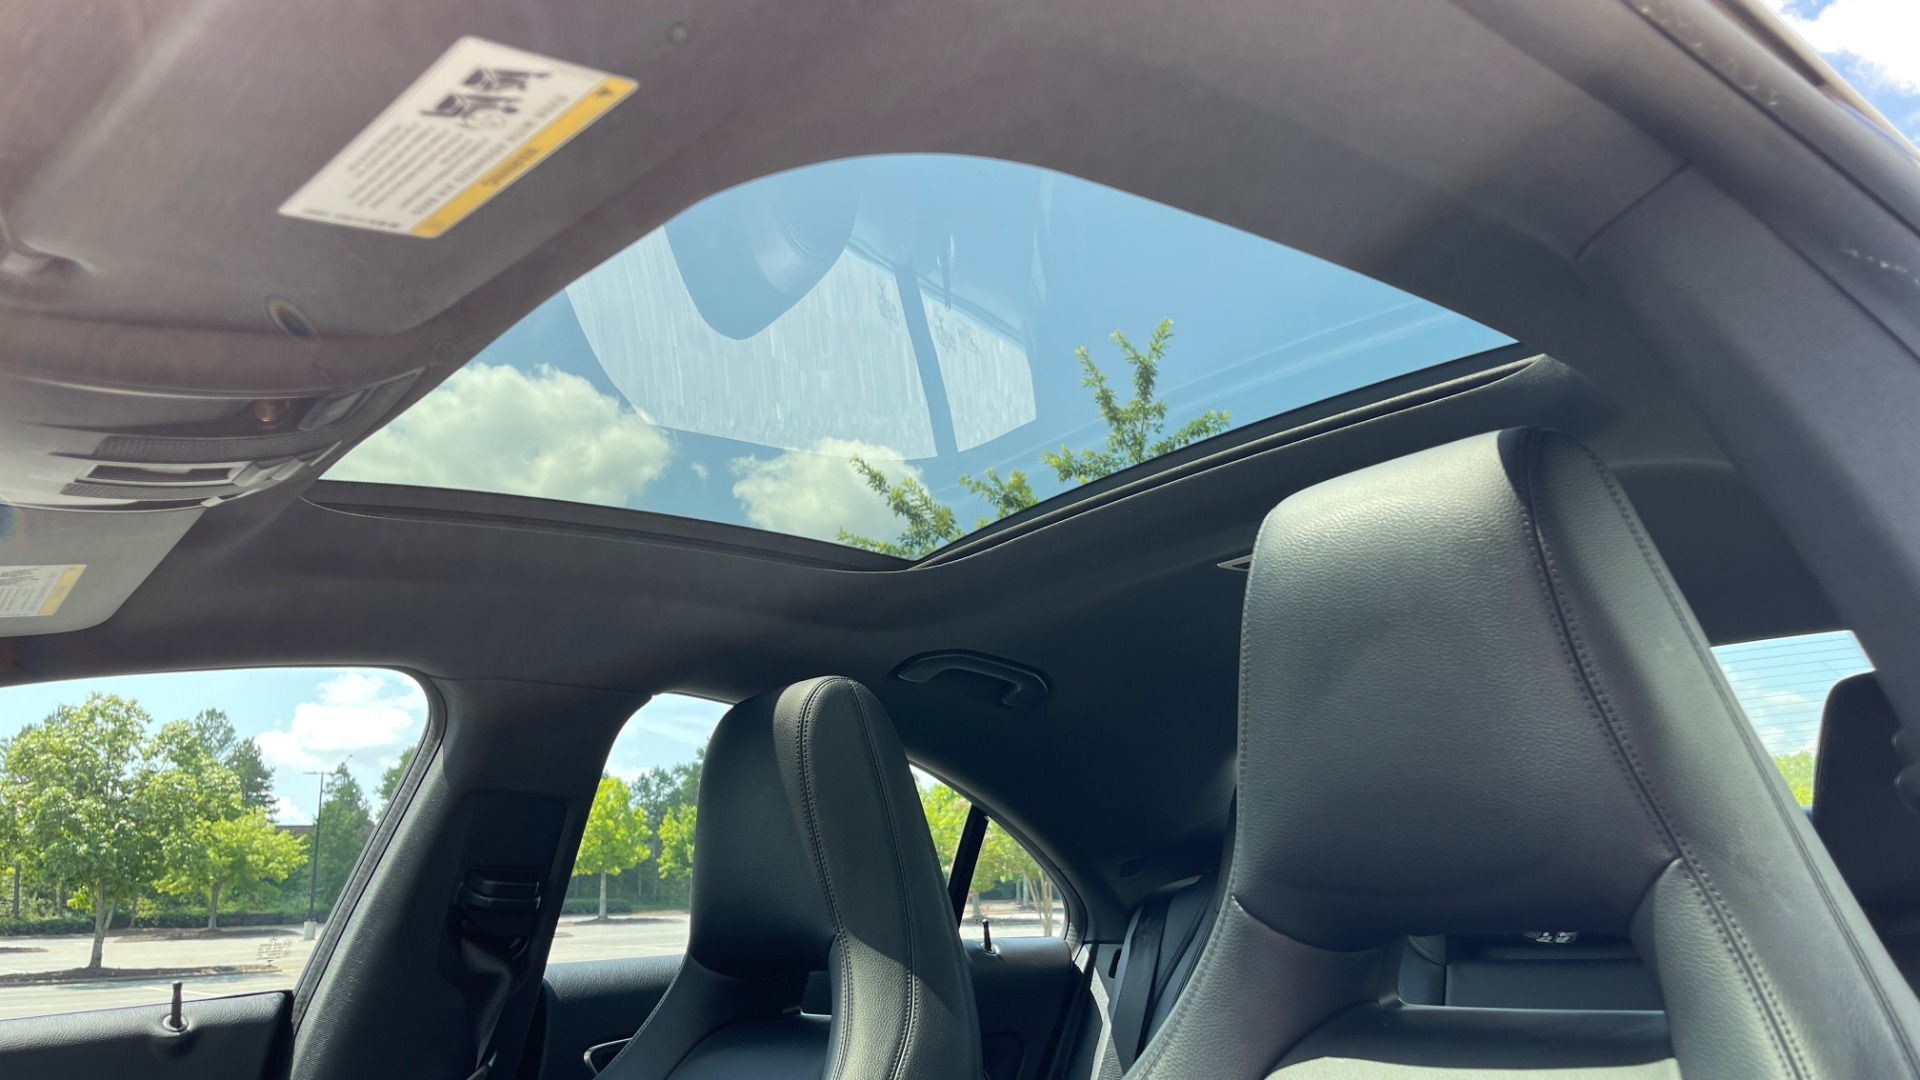 Used 2014 Mercedes-Benz CLA-Class 250 PREMIUM / NAV / MULTIMEDIA PKG / PANO-ROOF / REARVIEW for sale $19,495 at Formula Imports in Charlotte NC 28227 42